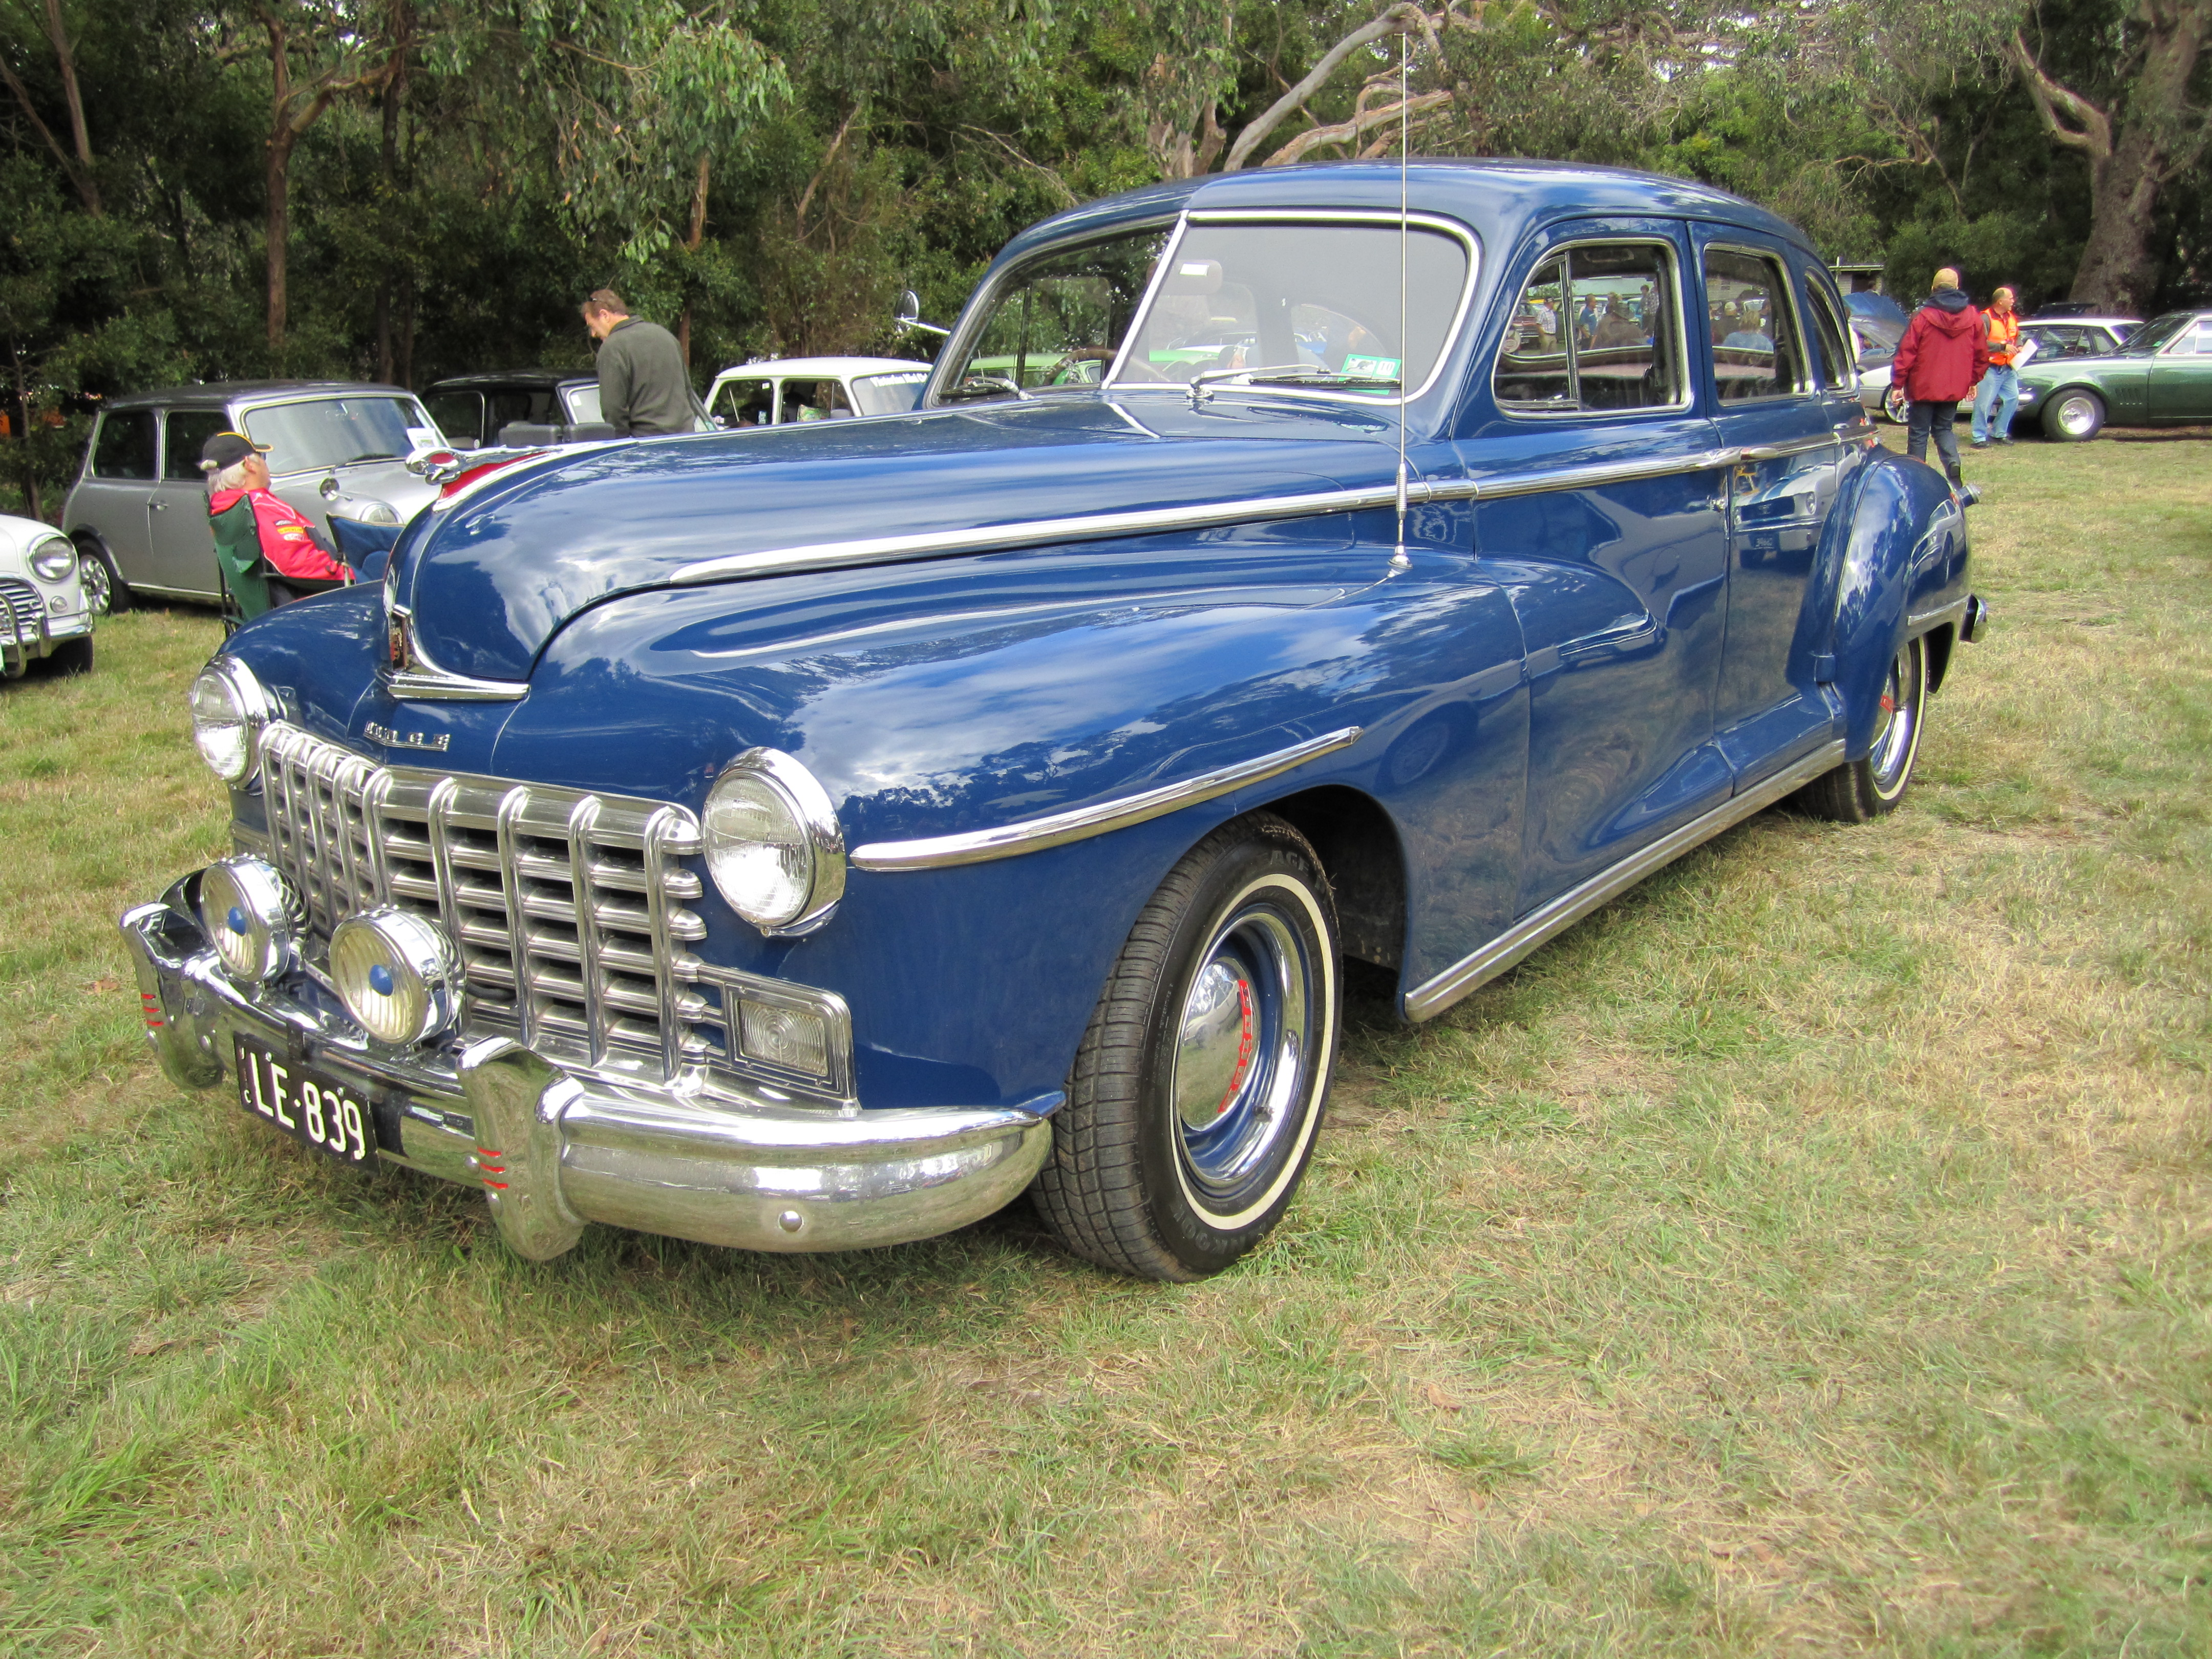 File:1948 Dodge Custom Sedan.jpg